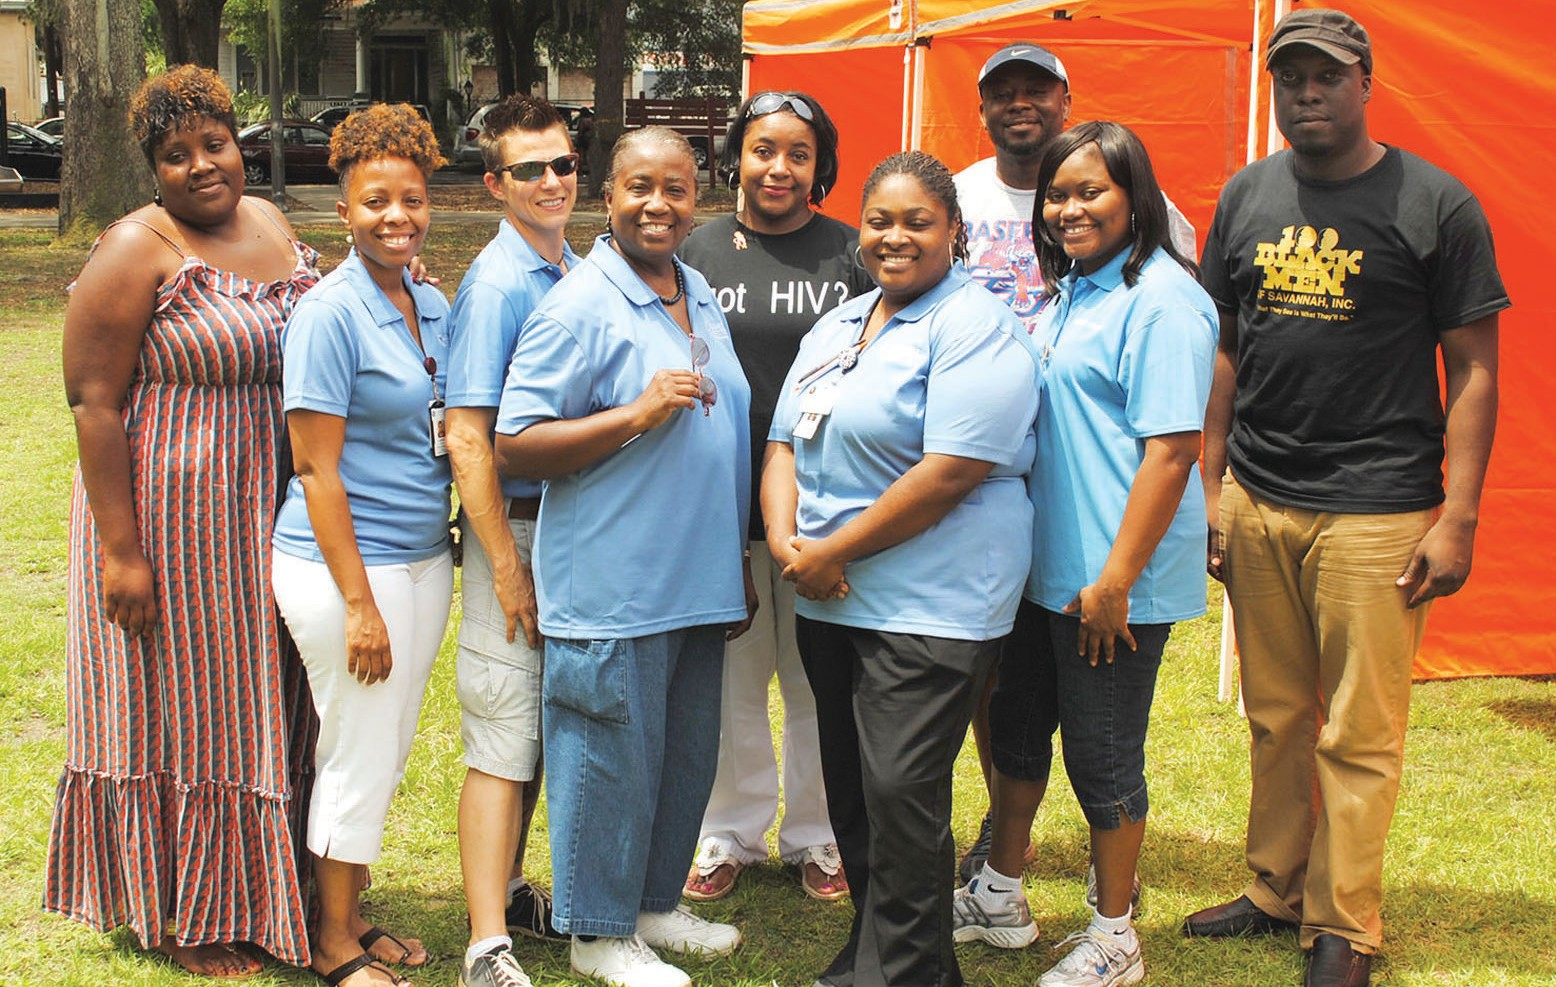 Chatham CARE Center Staff and Volunteers that particpated in National HIV/AIDS Testing Day